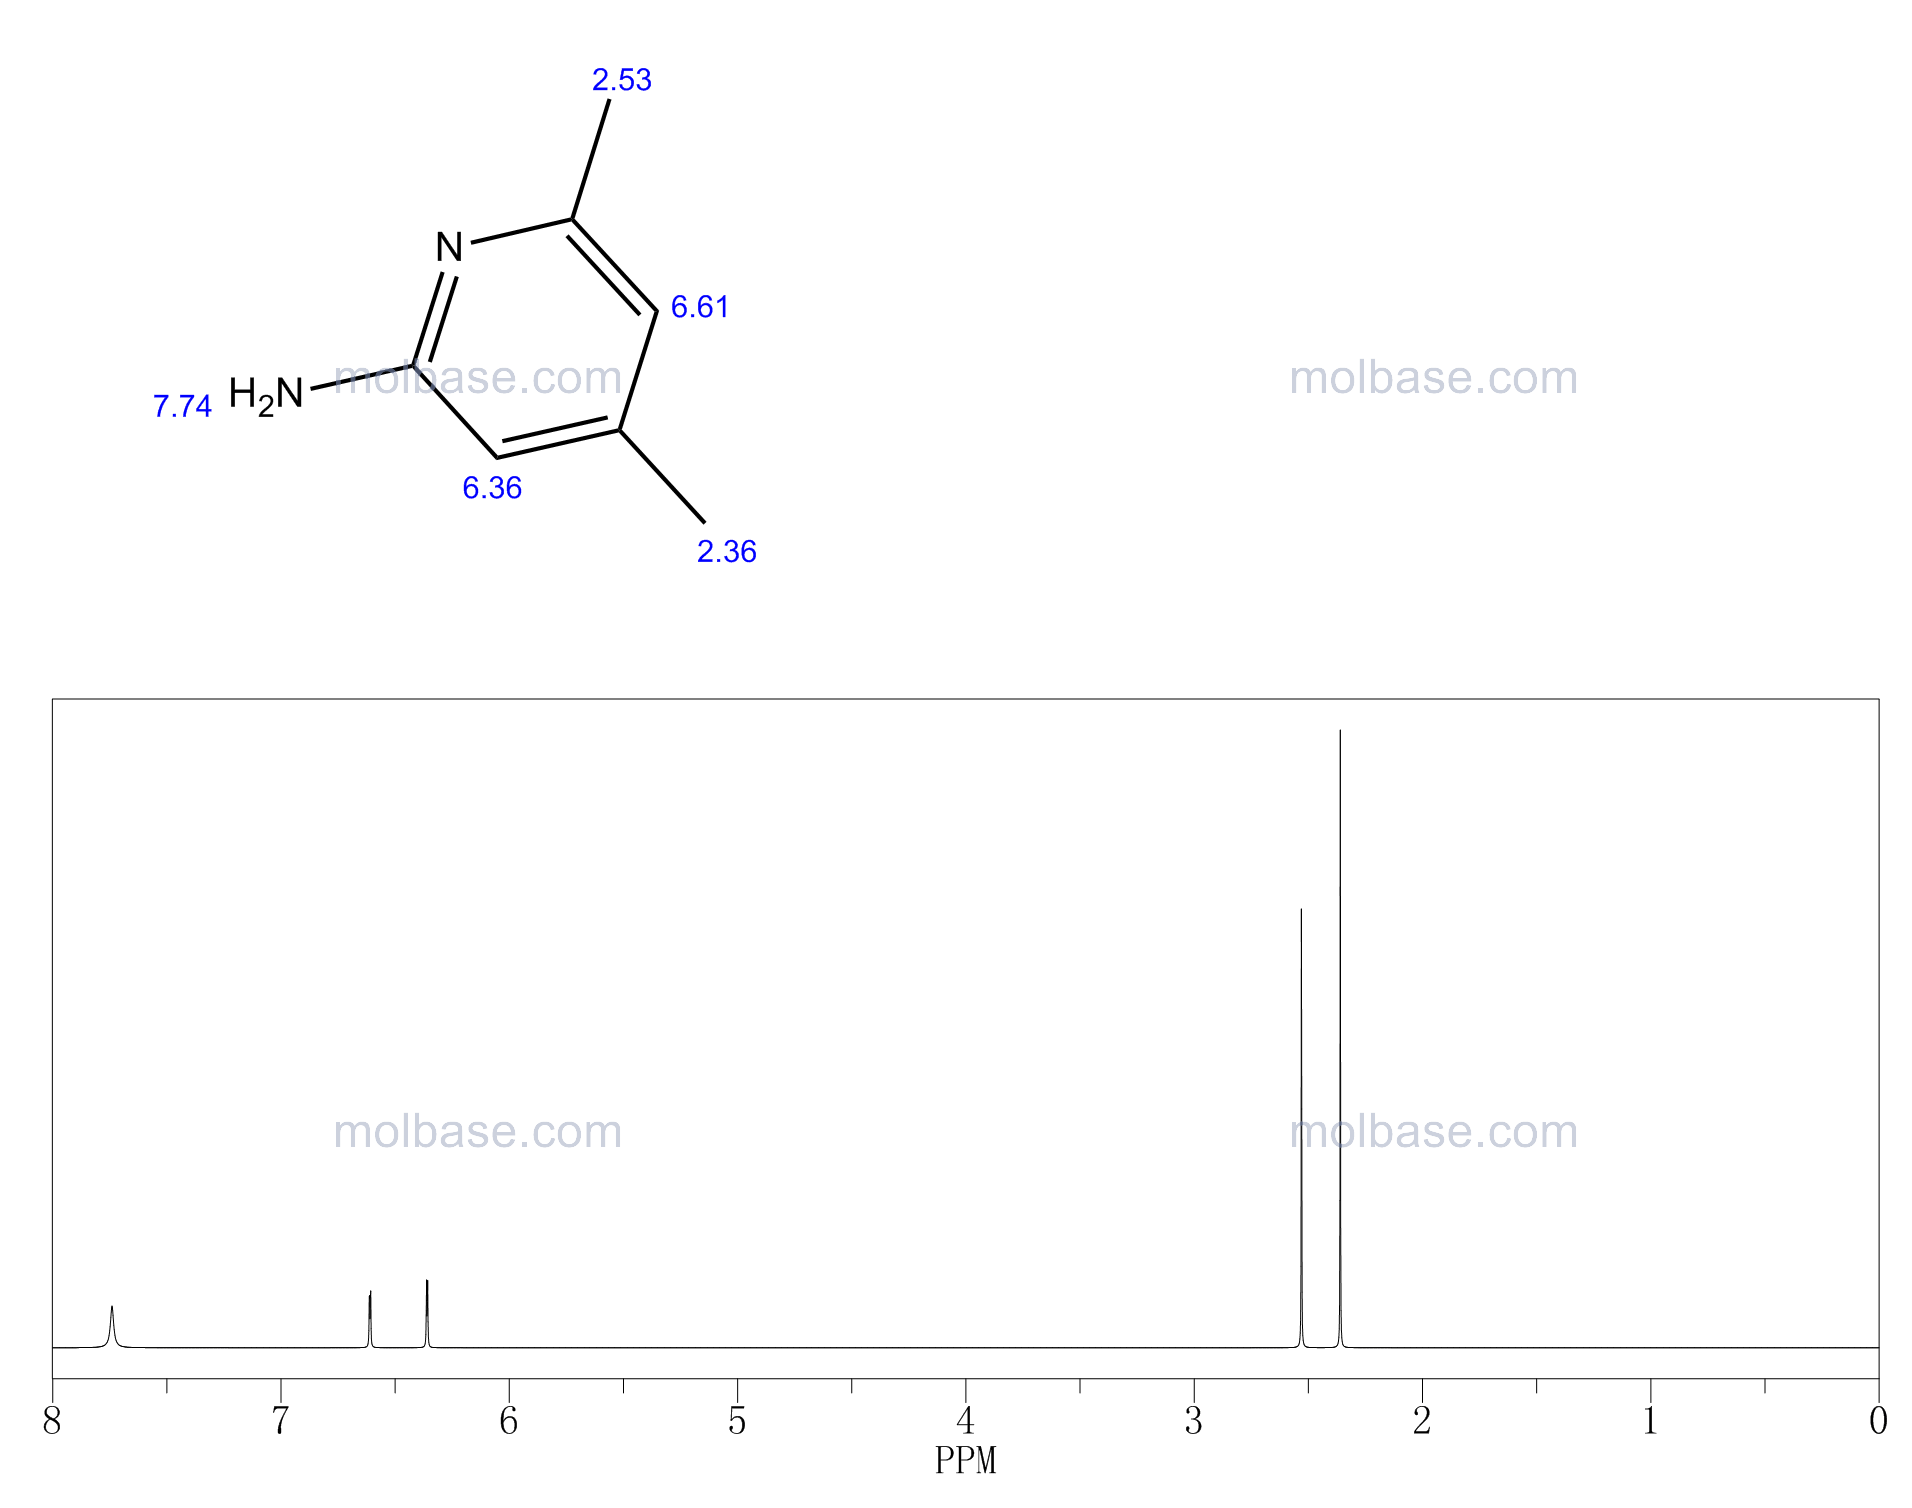 2-Amino-4,6-dimethylpyridine NMR spectra analysis, Chemical CAS NO. 5407-87-4 NMR spectral analysis, 2-Amino-4,6-dimethylpyridine C-NMR spectrum